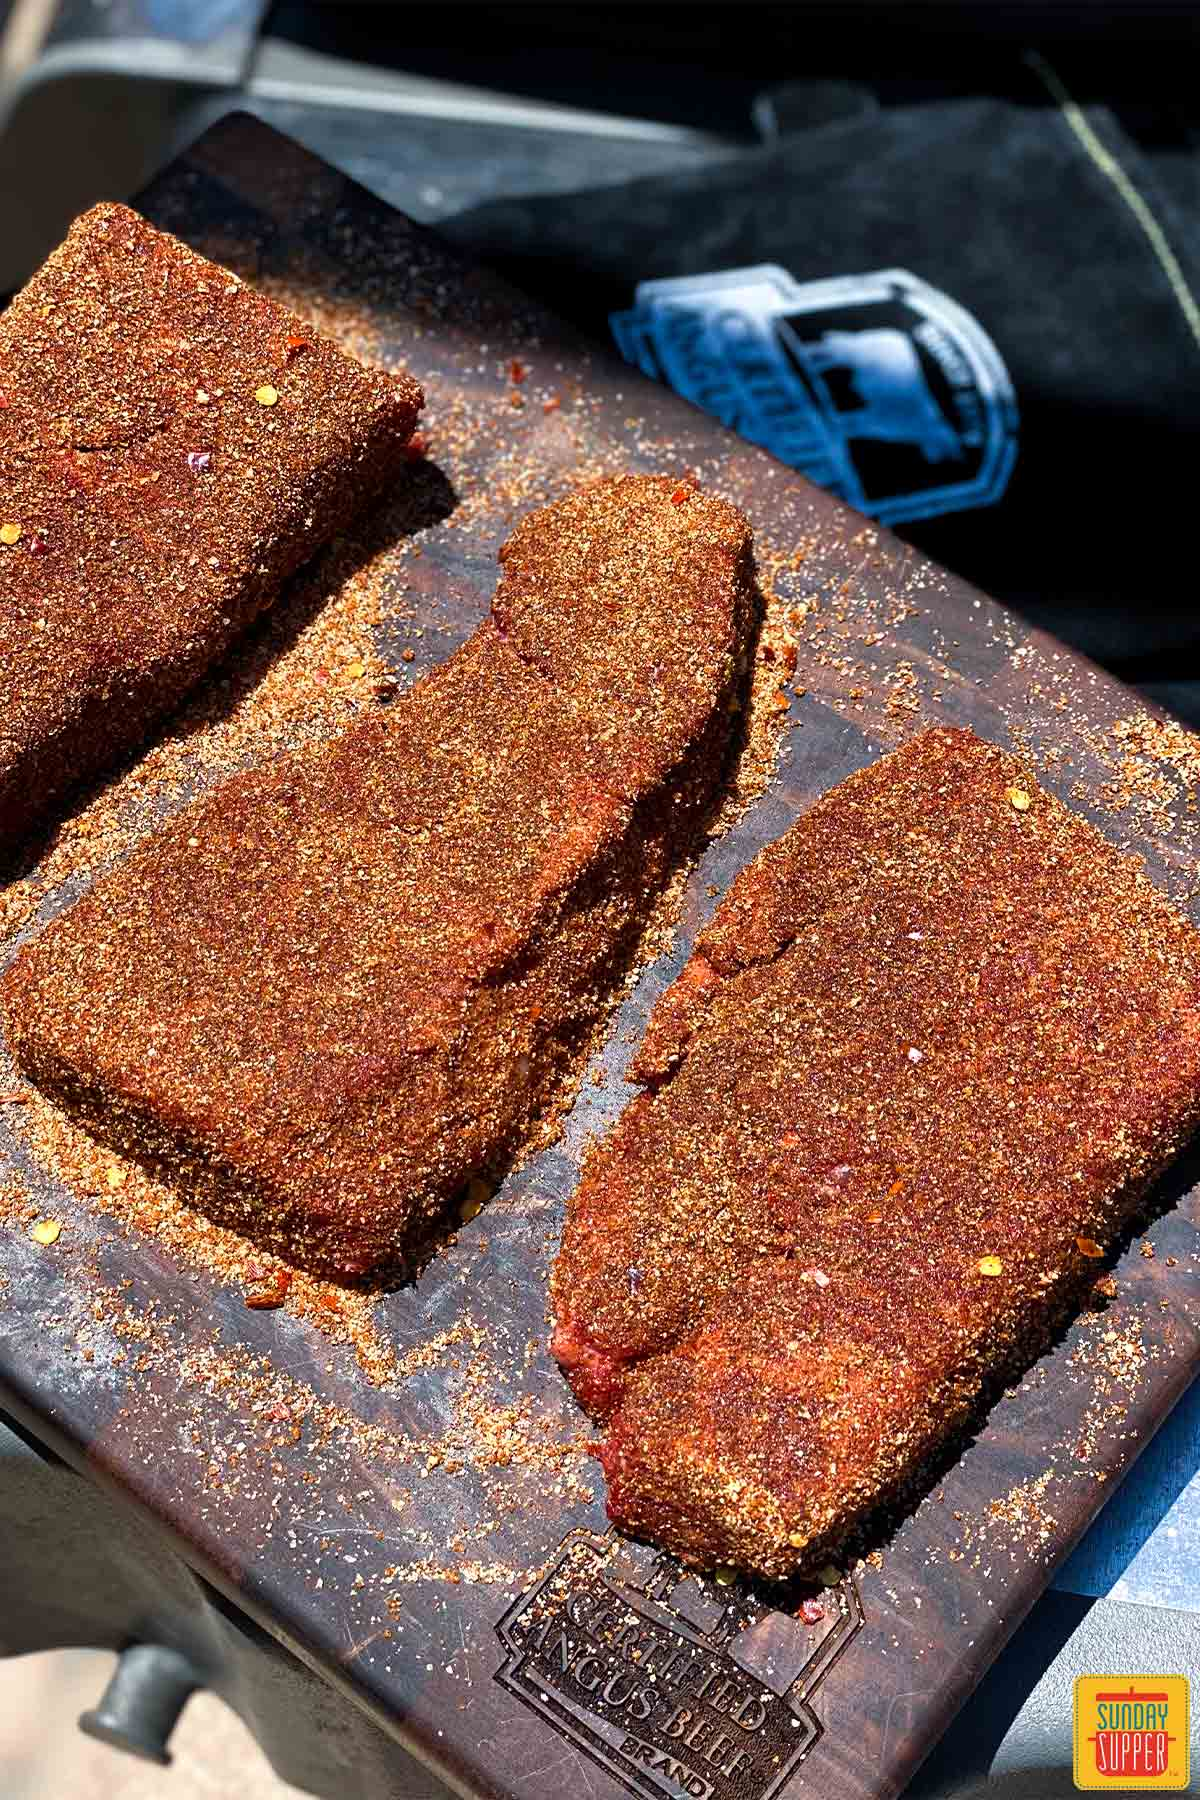 Beef short ribs coated in seasoning and ready to grill